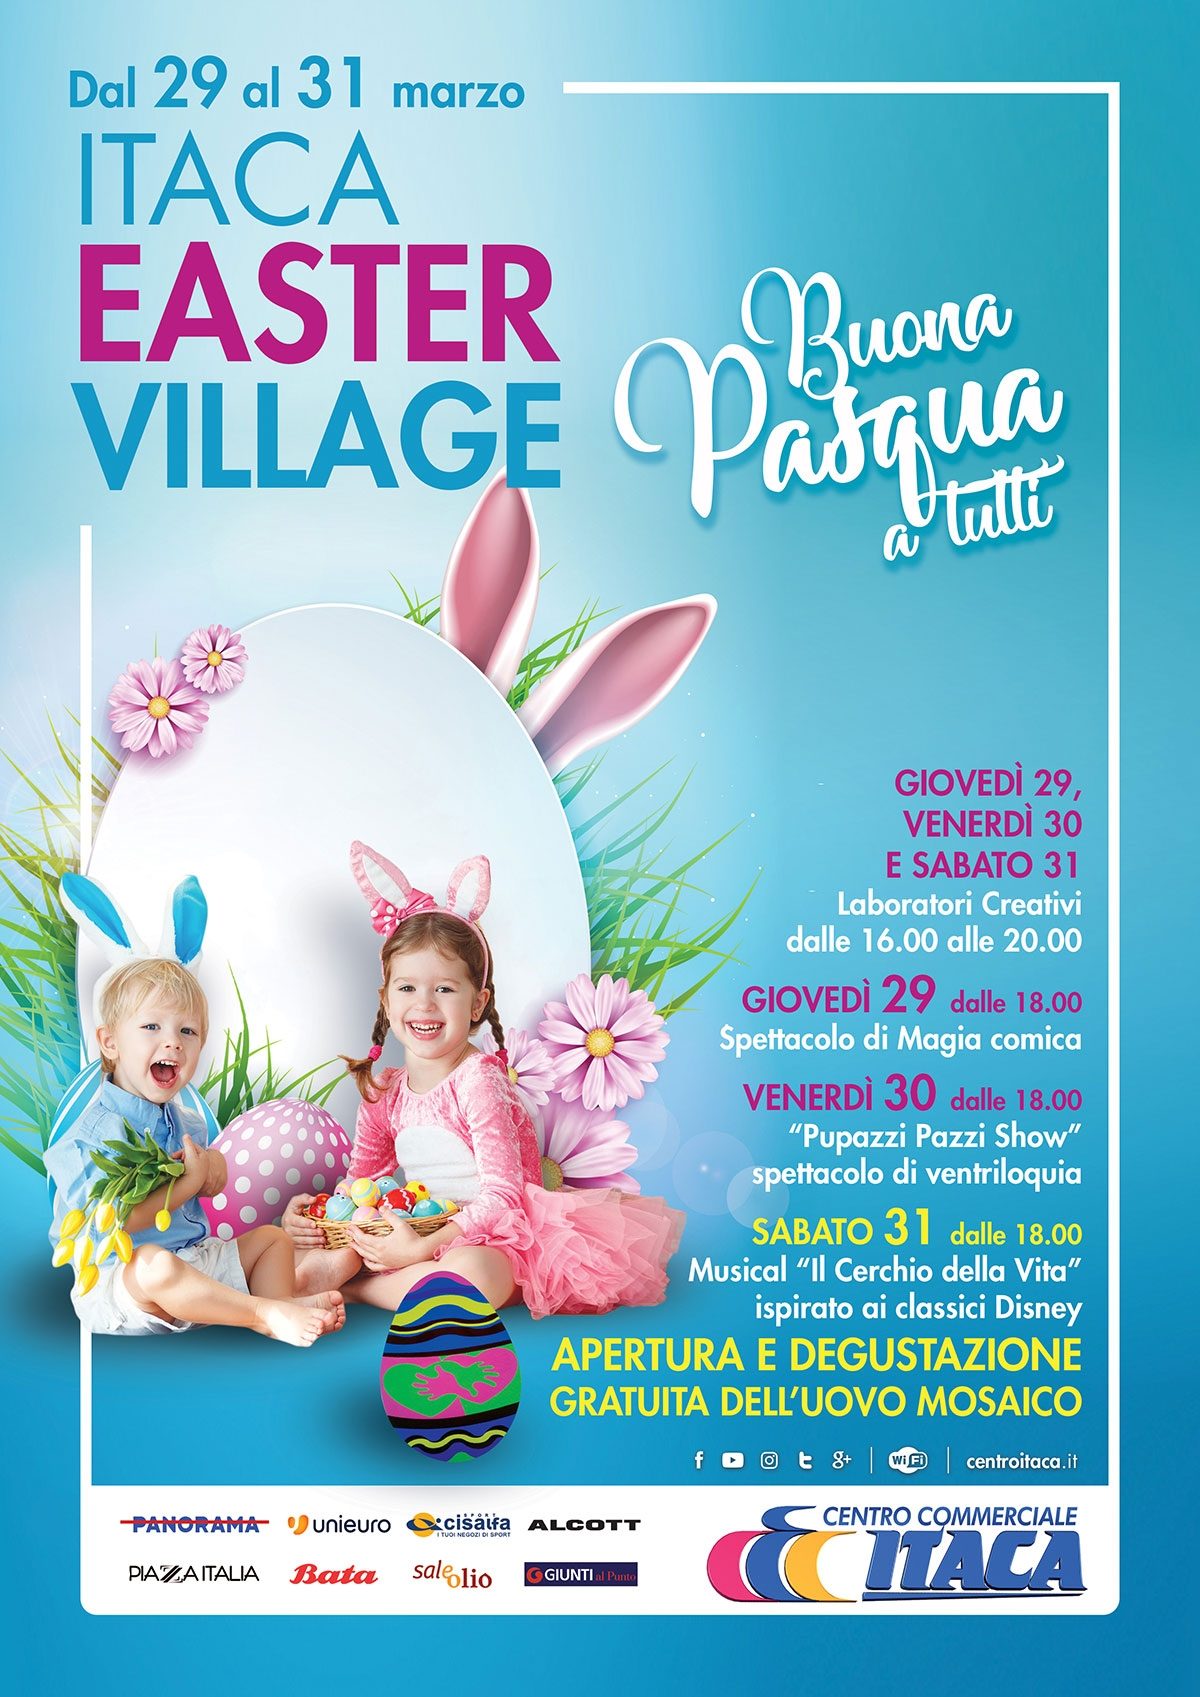 ITACA EASTER VILLAGE